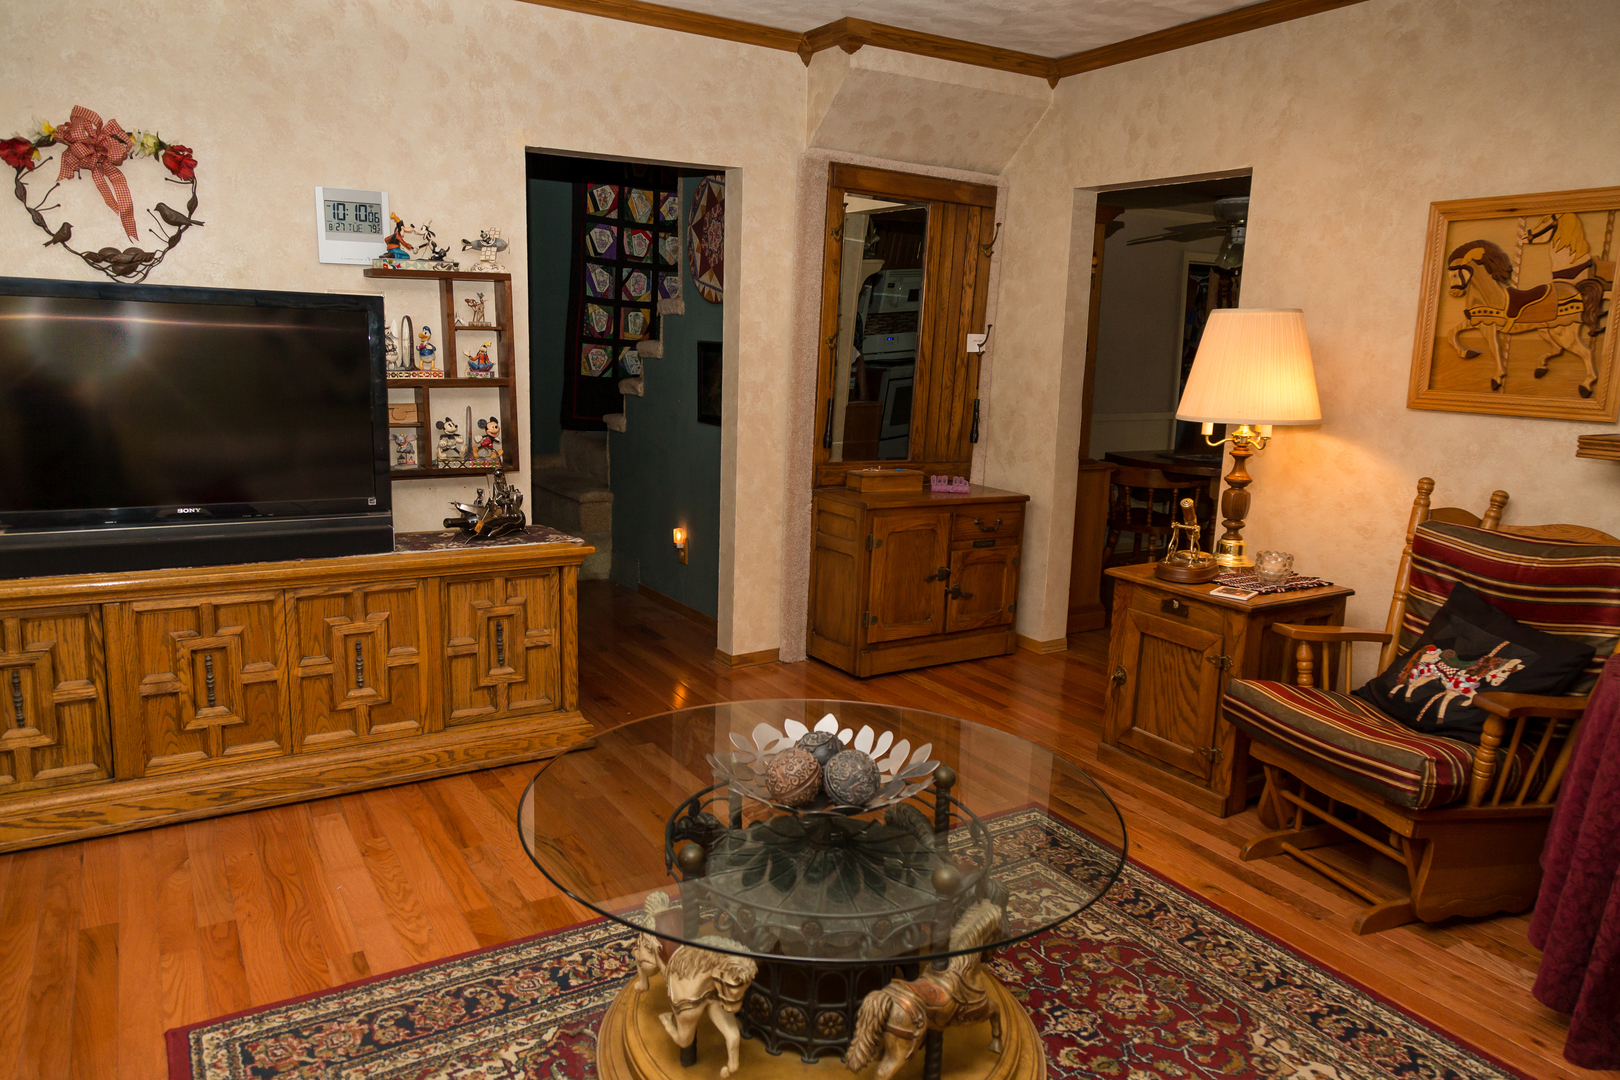 415 West 4th, Lostant, Illinois, 61334